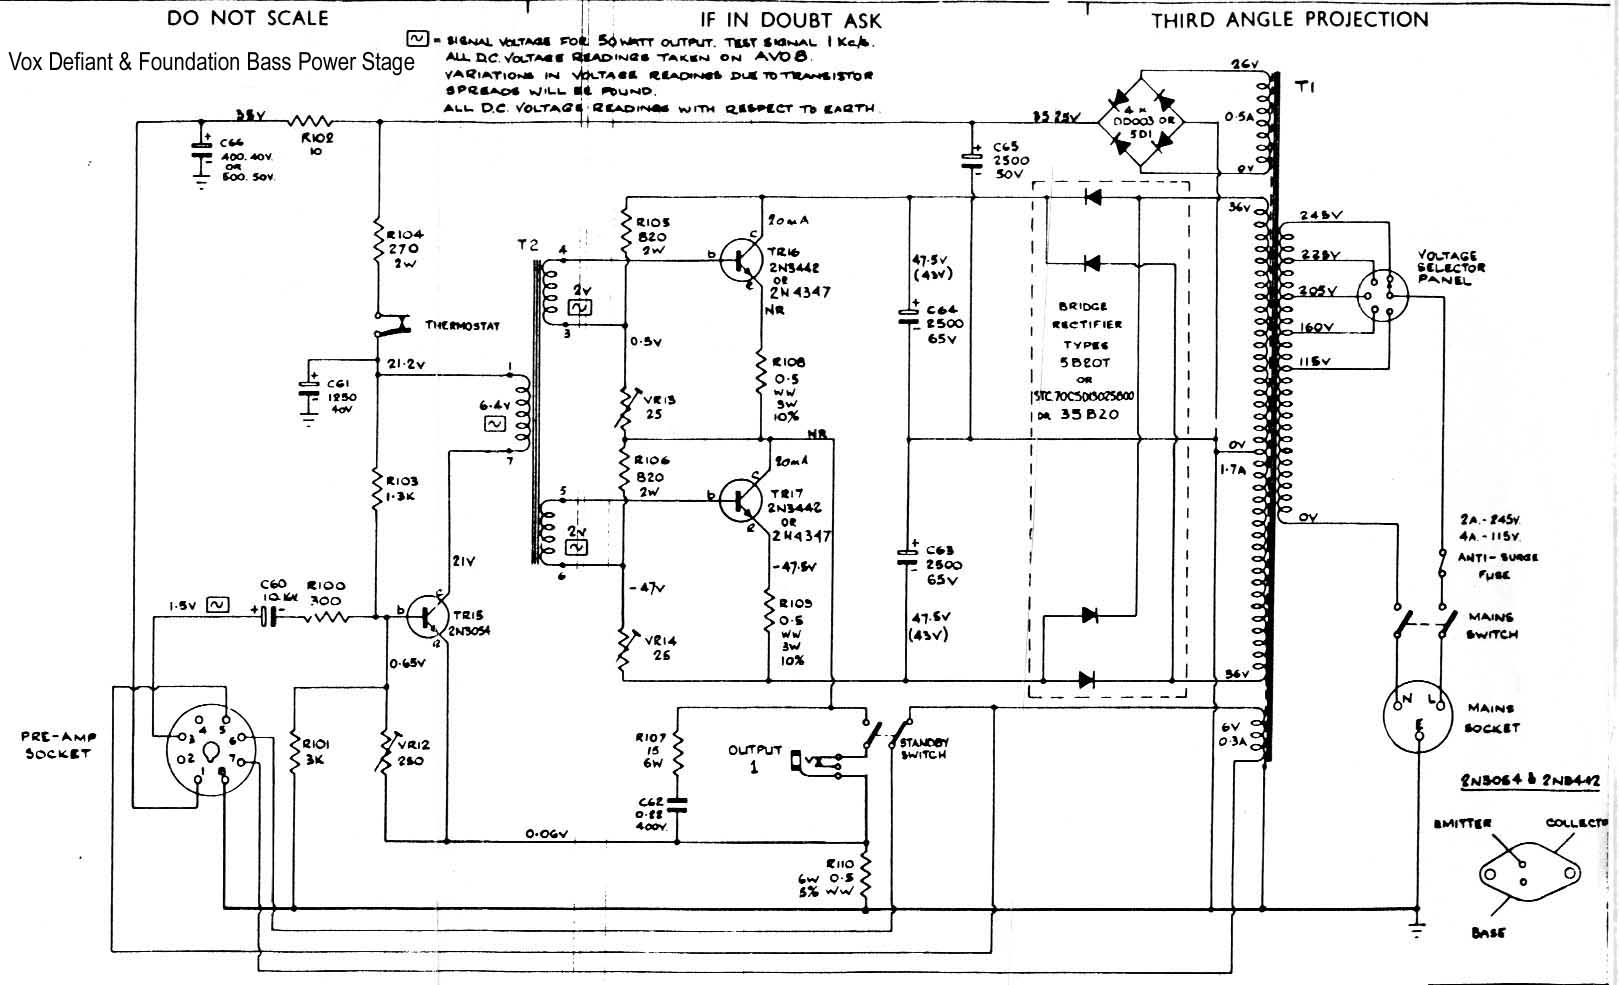 Vox Solid State schematics on motor schematics, radio schematics, speaker schematics, generator schematics, wire schematics, ic circuit schematics, modem schematics, led schematics, orange amp schematics, robot schematics, guitar schematics, valve schematics, ulf receiver schematics, audio circuit schematics, electronic circuit schematics, astable multivibrator schematics, computer schematics, heathkit schematics, transformer schematics, tube schematics,